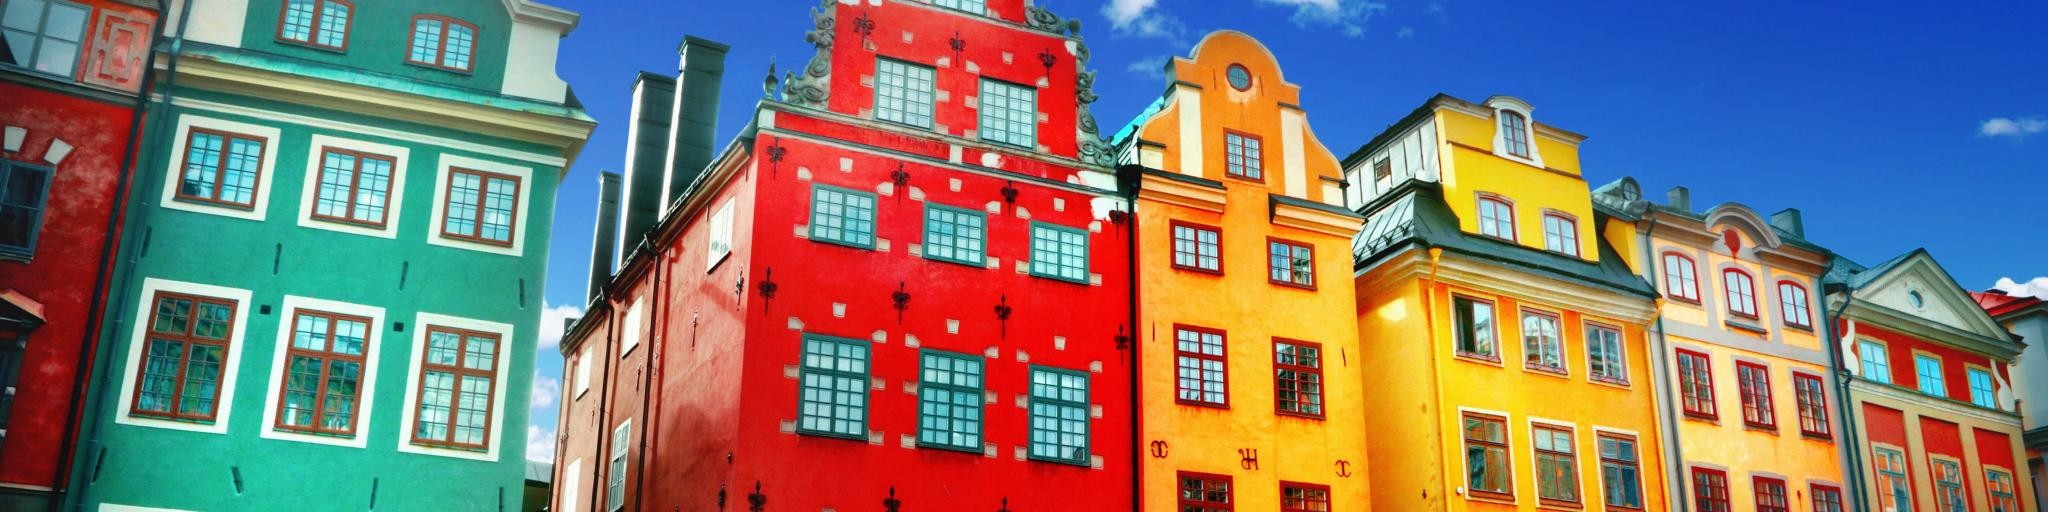 Colourful townhouses in Stockholm, Sweden - from left to right: green, red, three yellow and another green